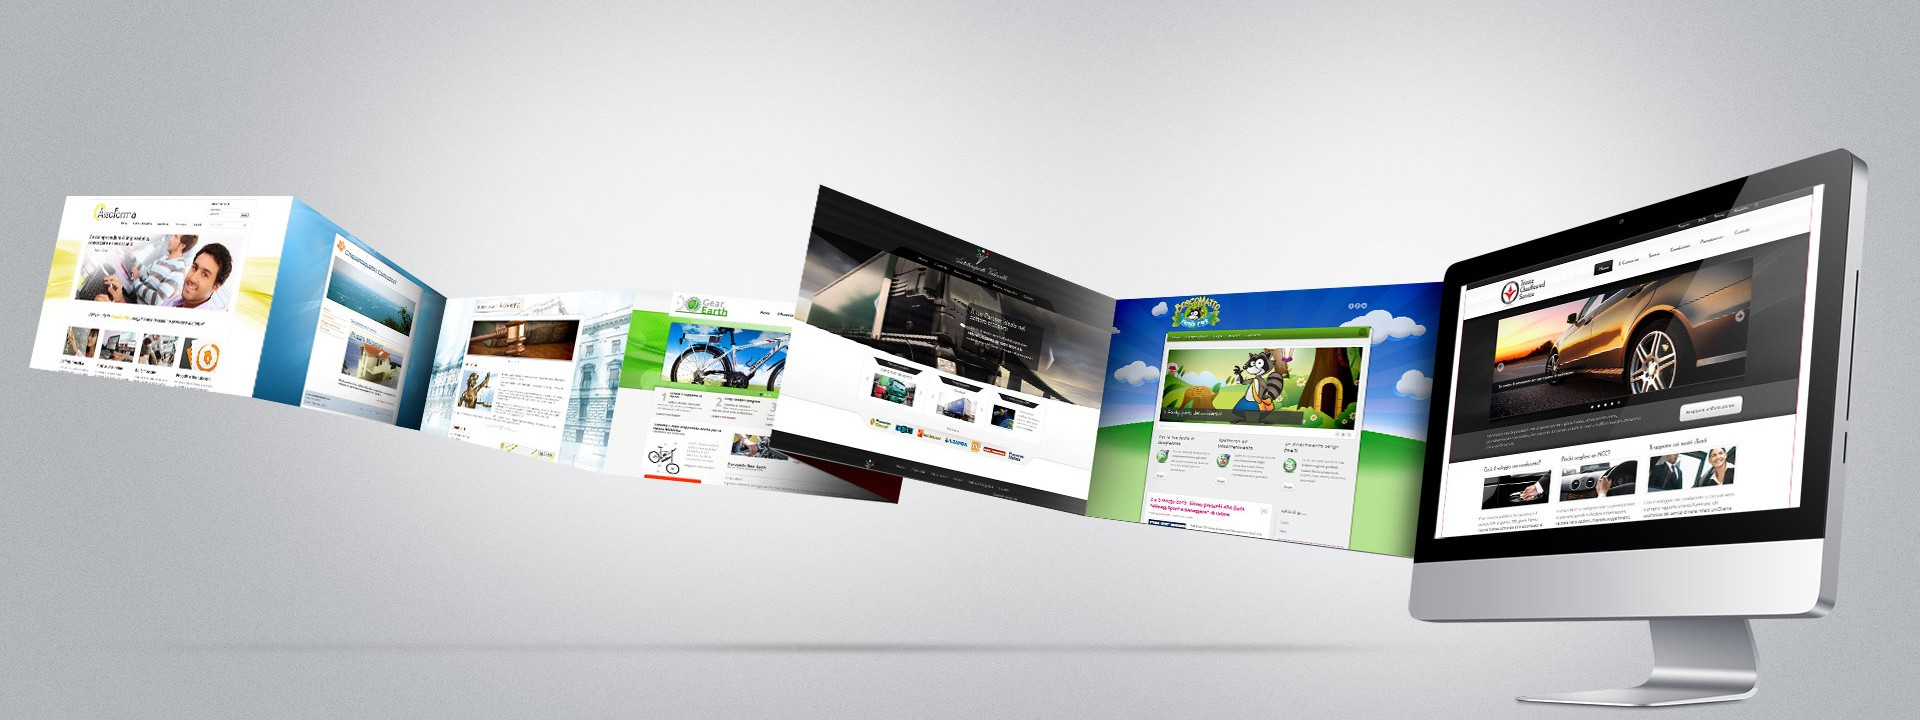 http://www.emotica.it/wp-content/uploads/2012/01/Web-Mockup-2-1920x720.jpg